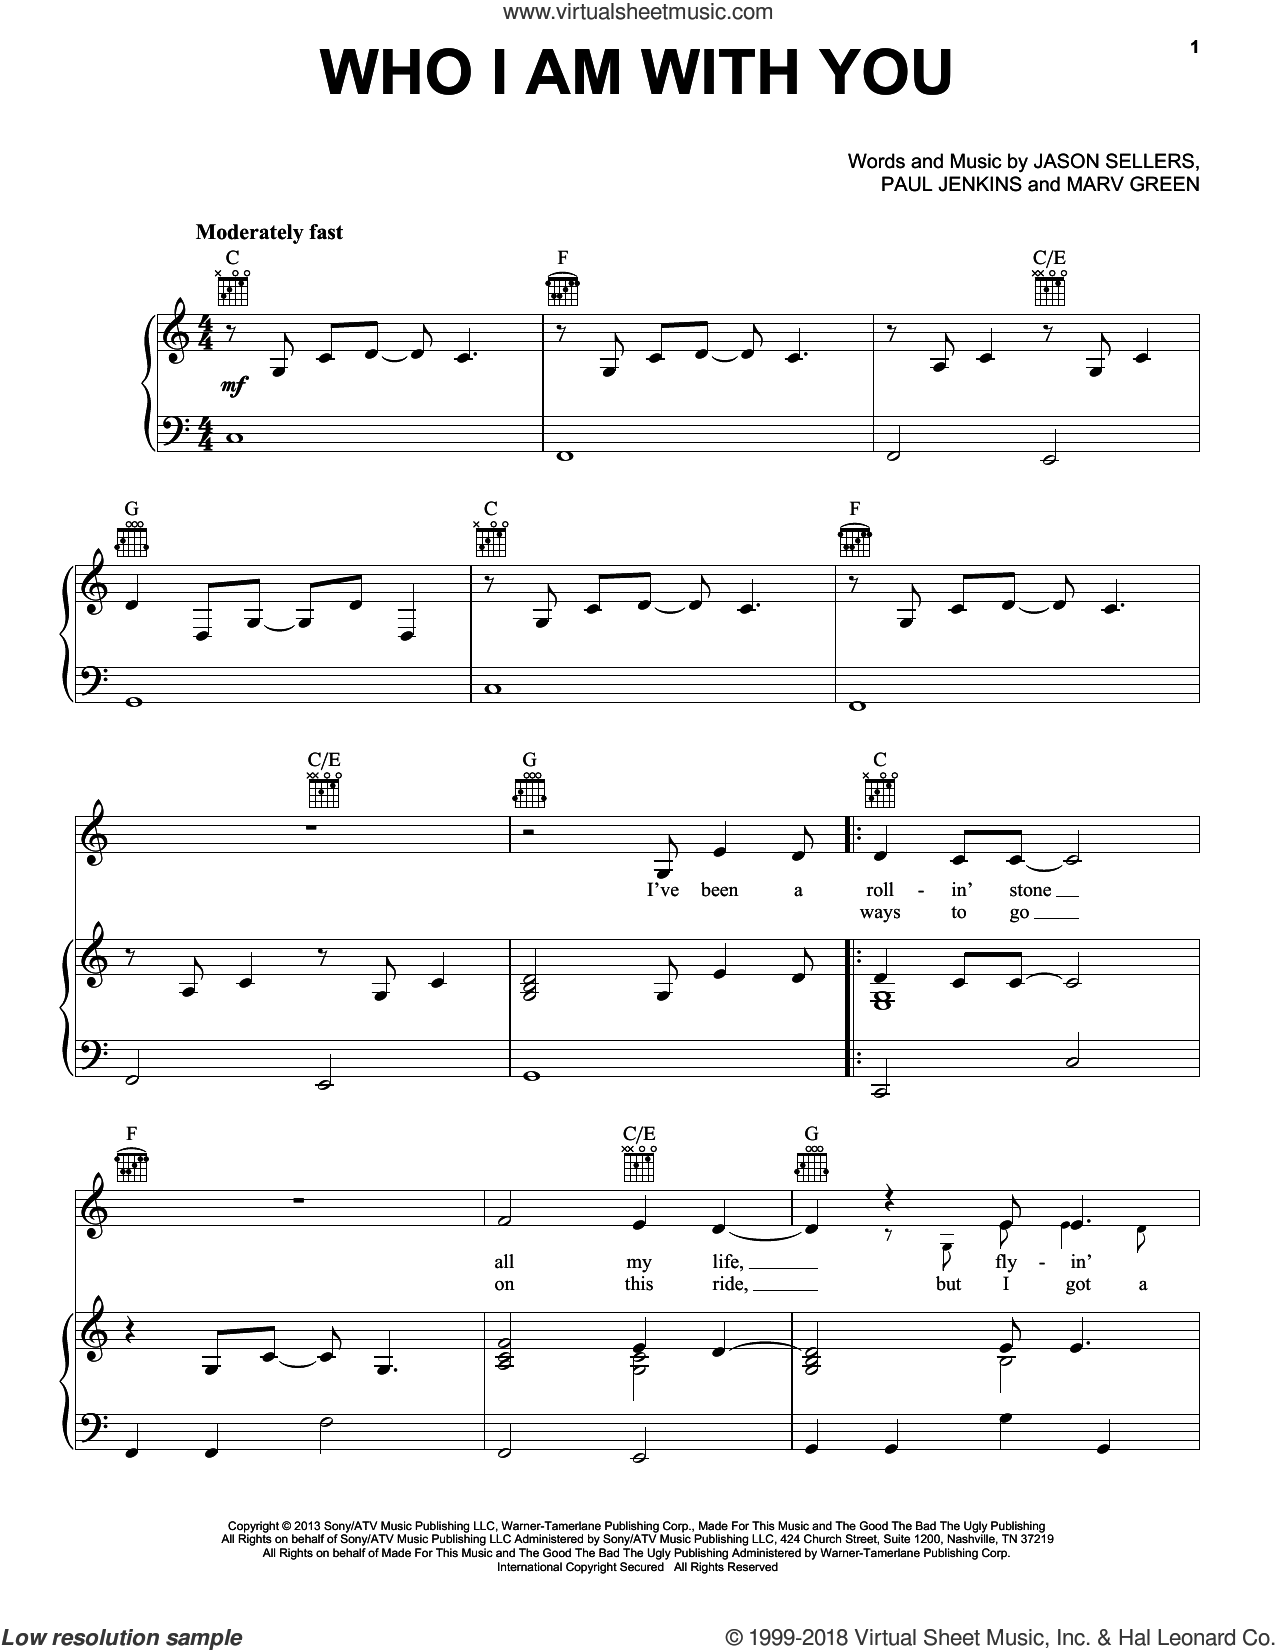 Who I Am With You sheet music for voice, piano or guitar by Chris Young, Jason Sellers, Marv Green and Paul Jenkins, intermediate skill level